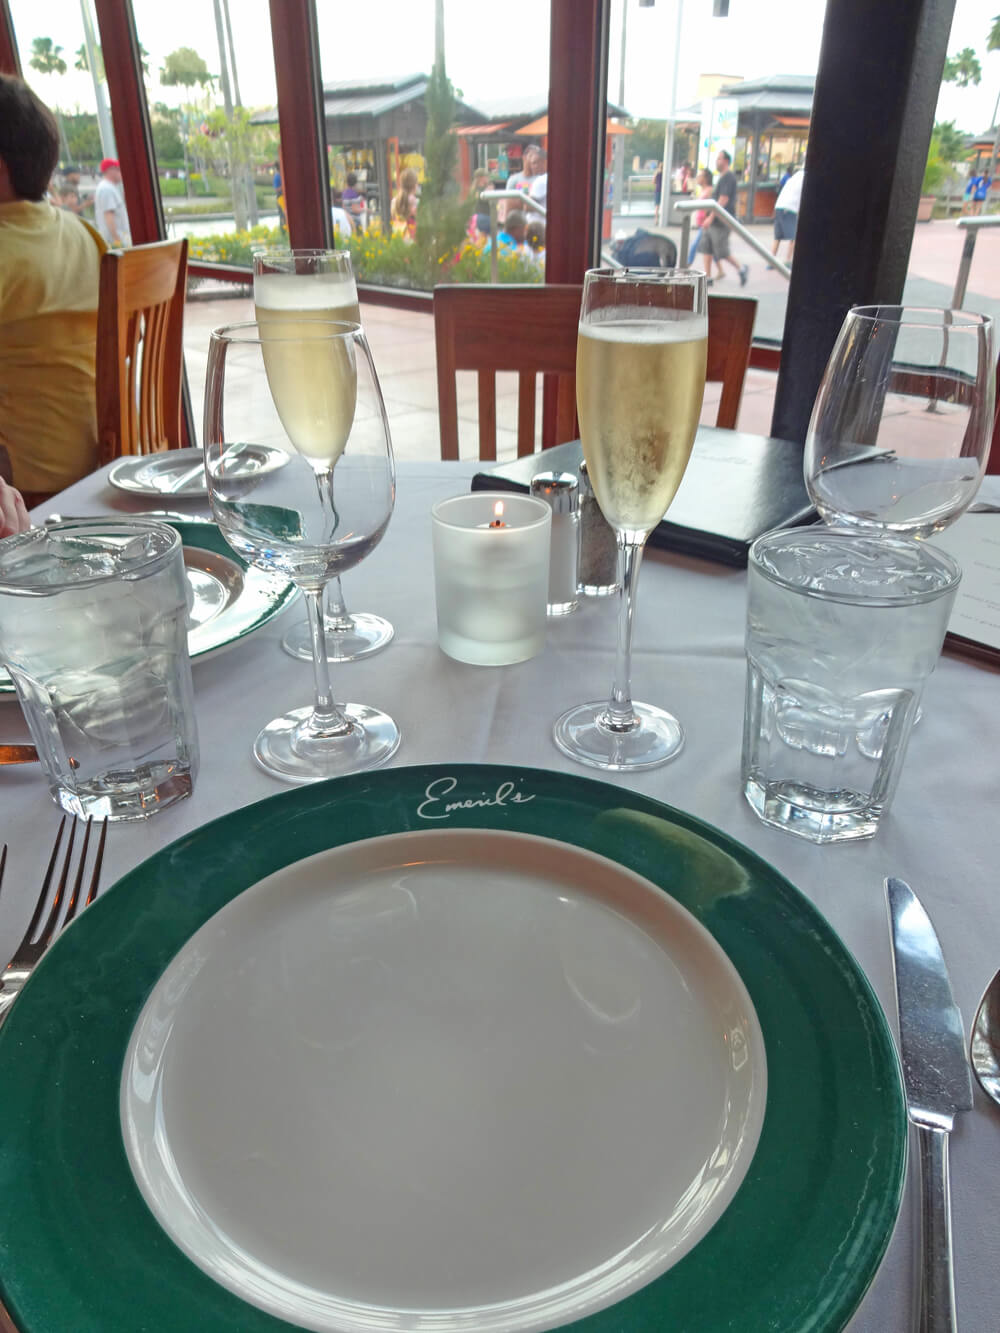 Best Table Service Restaurants At Universal CityWalk Orlando - Table service restaurants